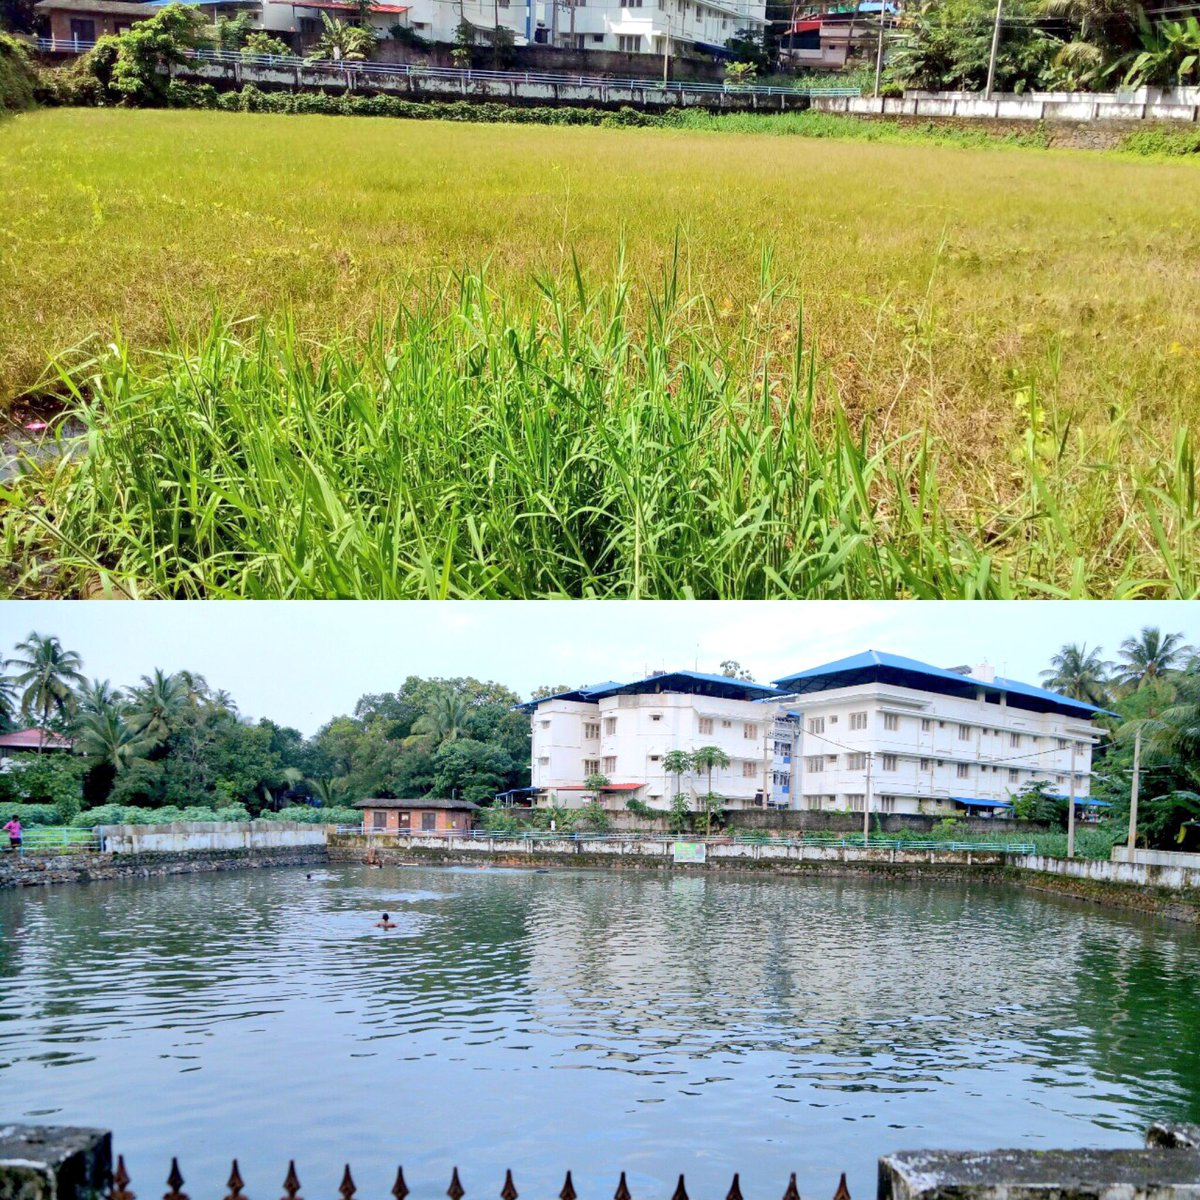 Cleaning of 9 ponds in Thrissur, Kottayam and Idukki, in Kerala, was completed by @ArtofLiving volunteers.